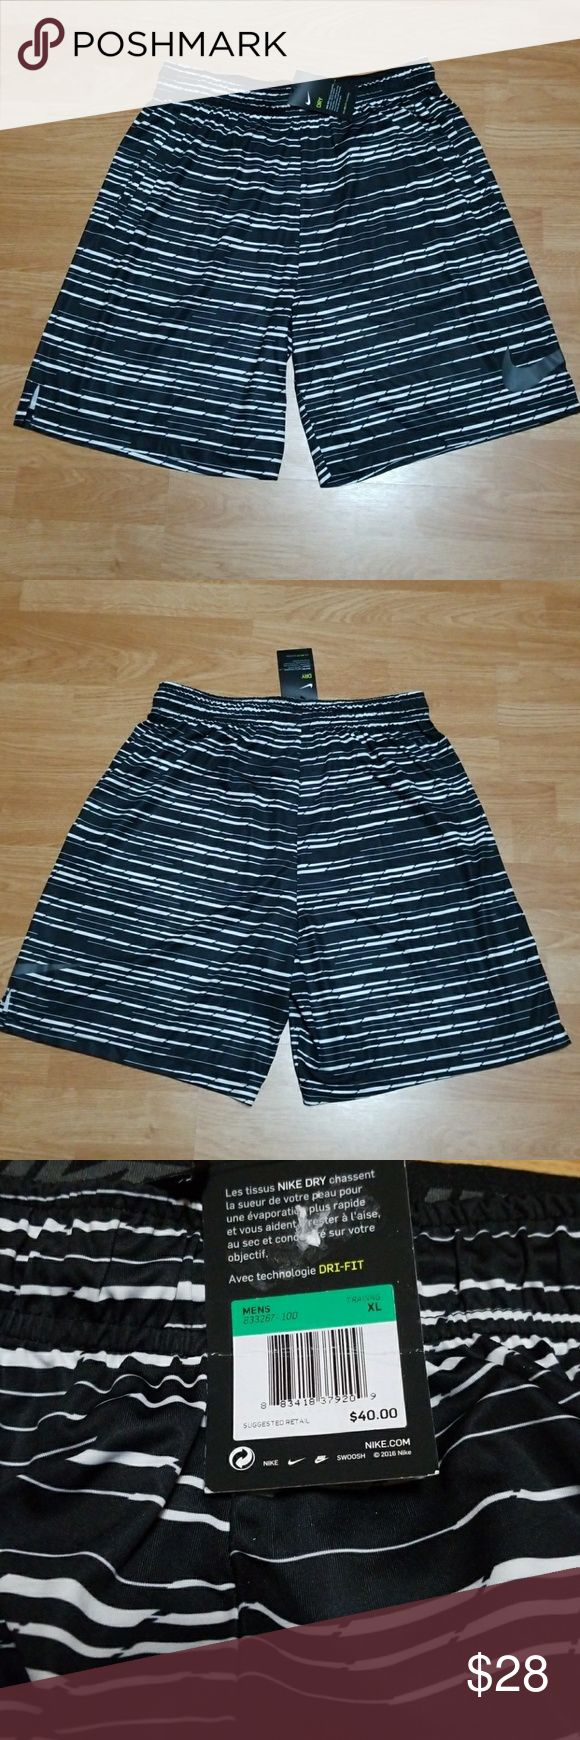 "NWT Men's Nike Workout Shorts New men's Nike sports shorts. 2 front pockets, slit on sides and inside string waistband. Waist to bottom is 22"". Nike Shorts Athletic"